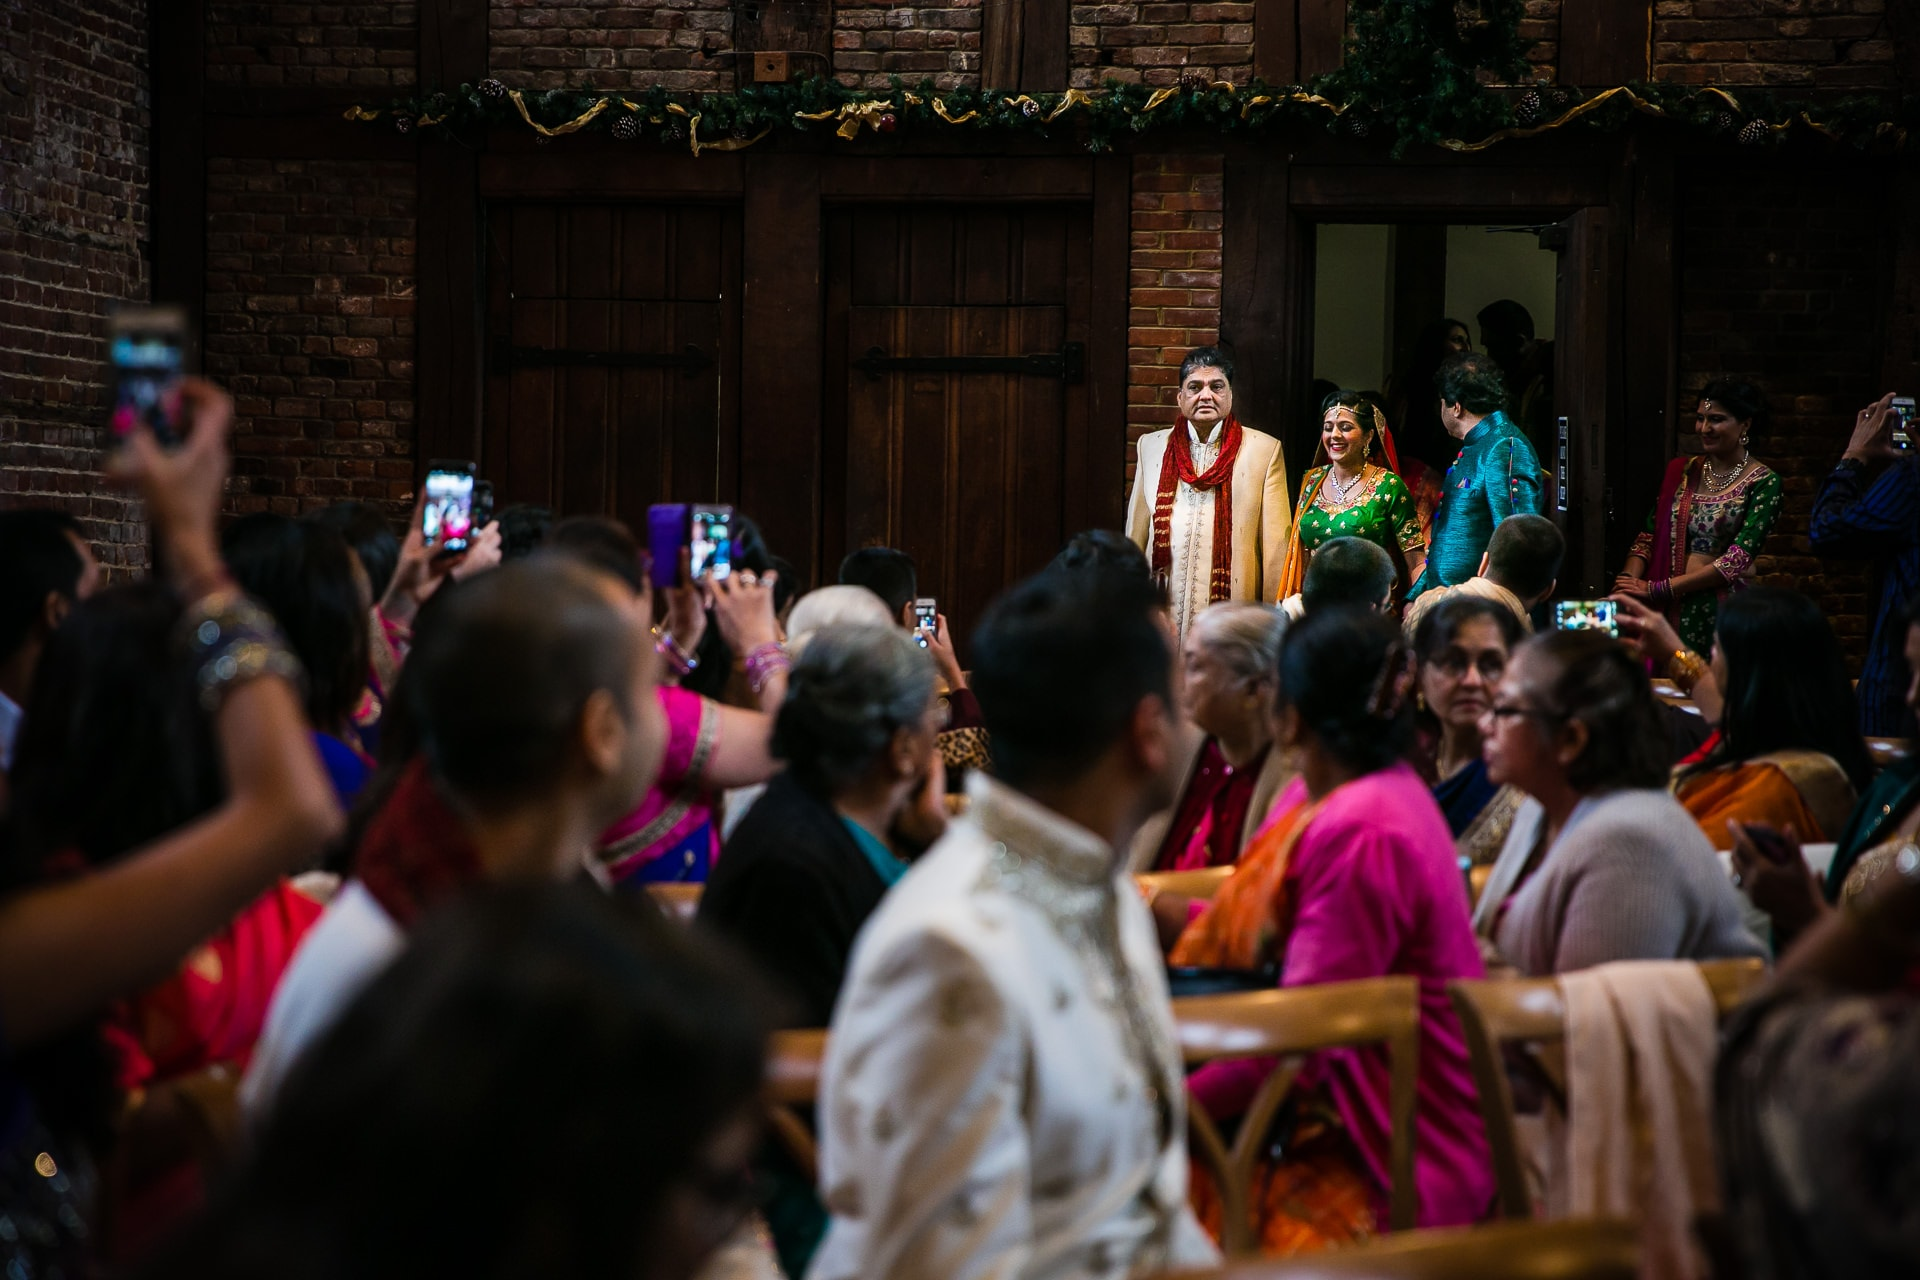 Bridal entrance during Hindu wedding